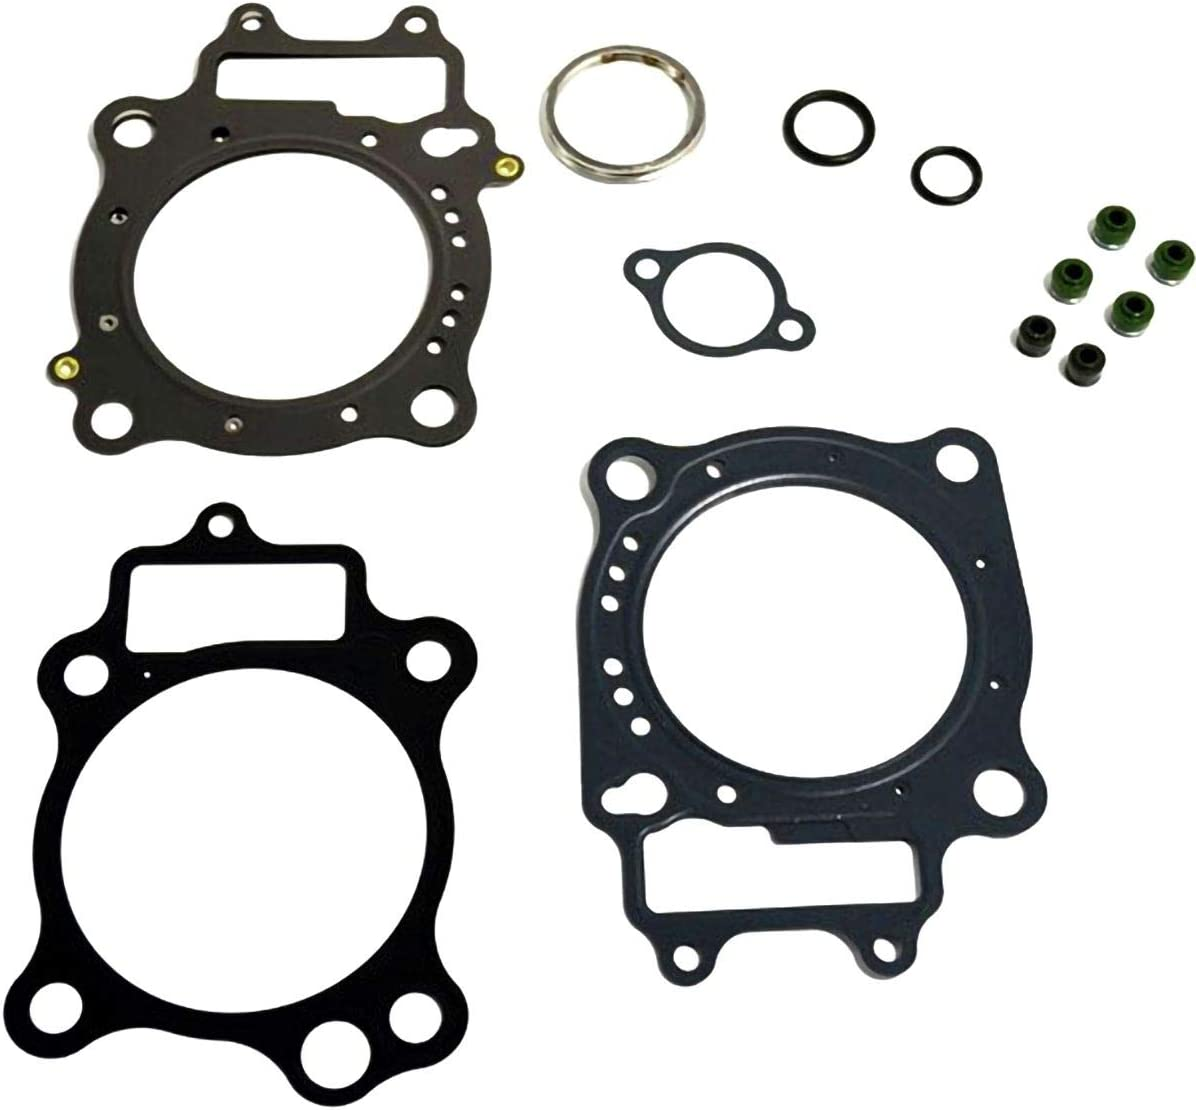 Athena Top End Gasket Kit for 04-09 Honda CRF250R